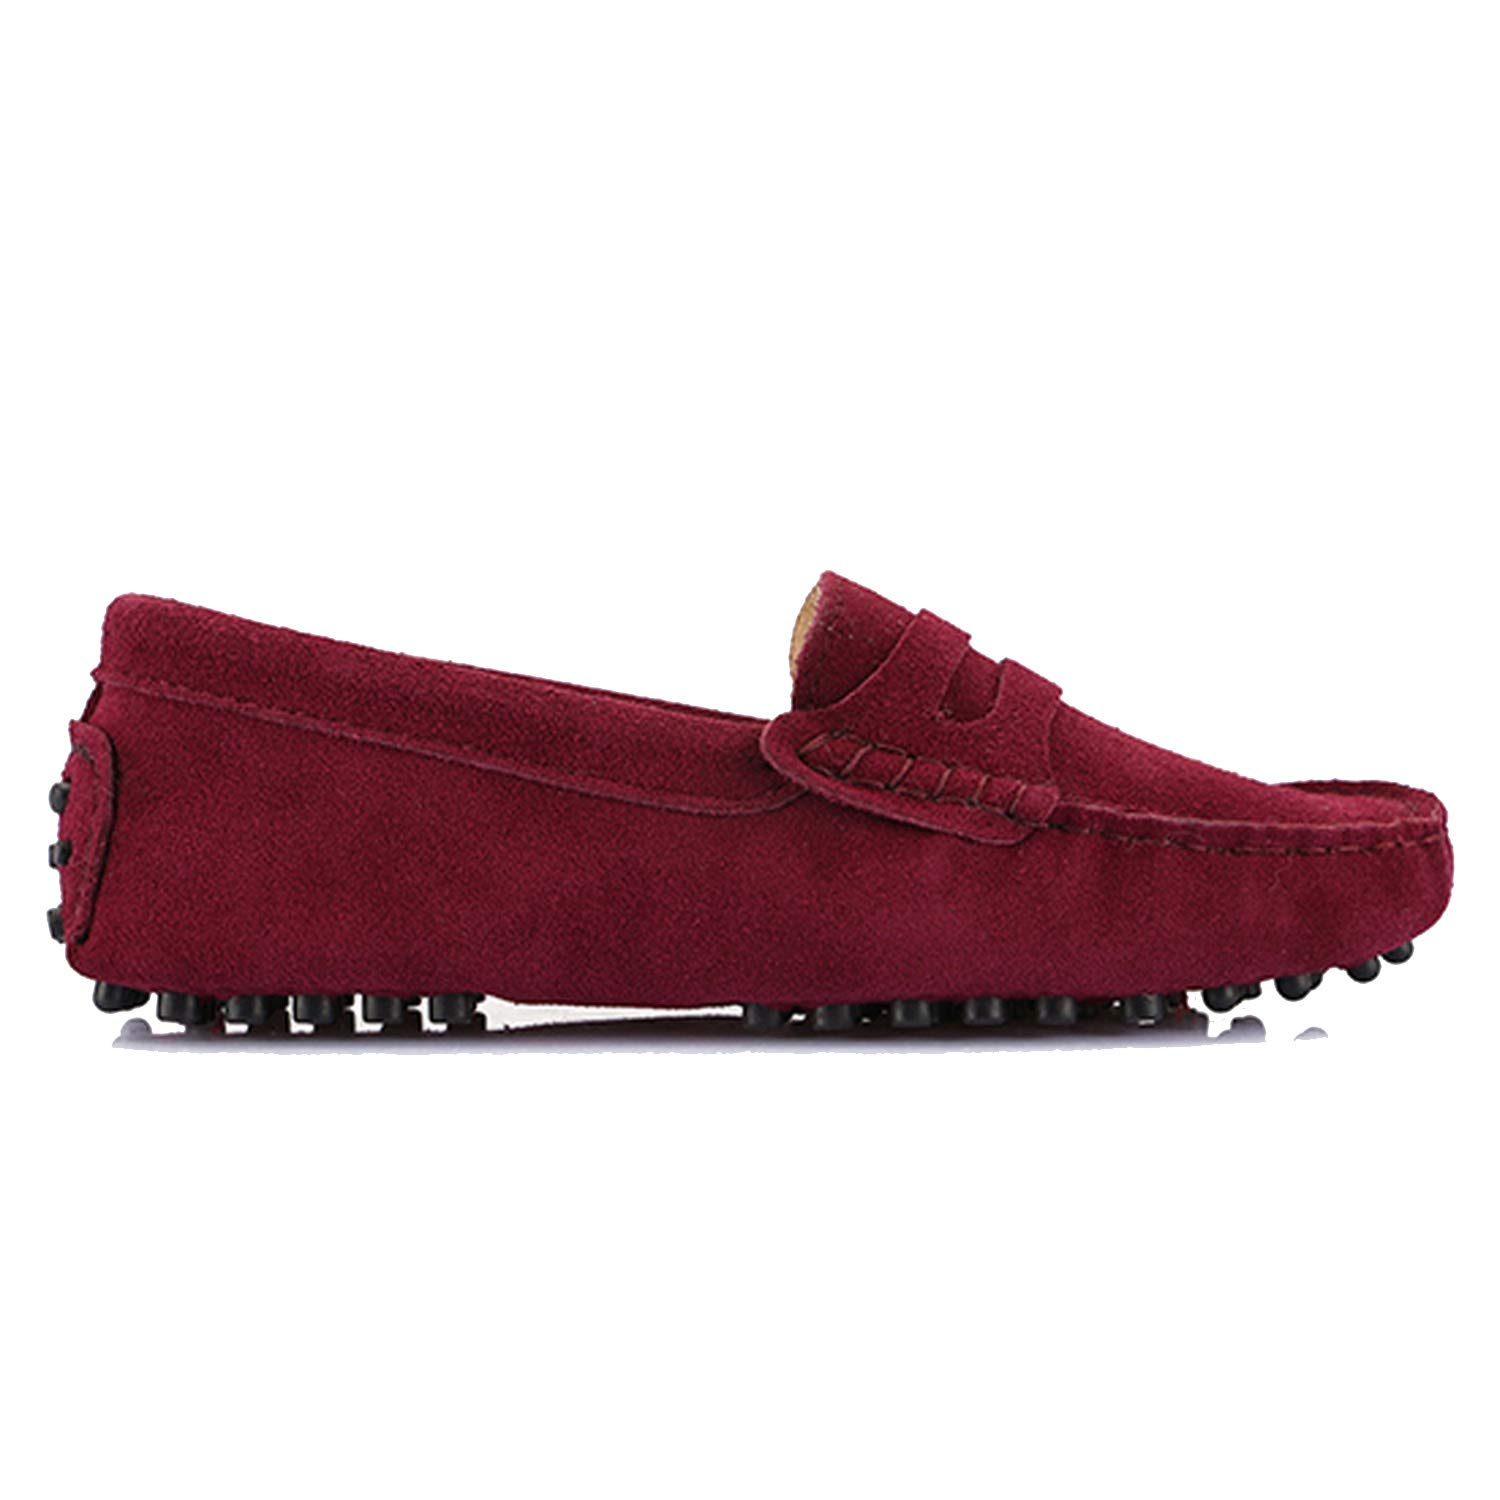 Wine Red Women's Woman shoes Flats Casual Loafers Soft Slip On Moccasins Lady Driving shoes